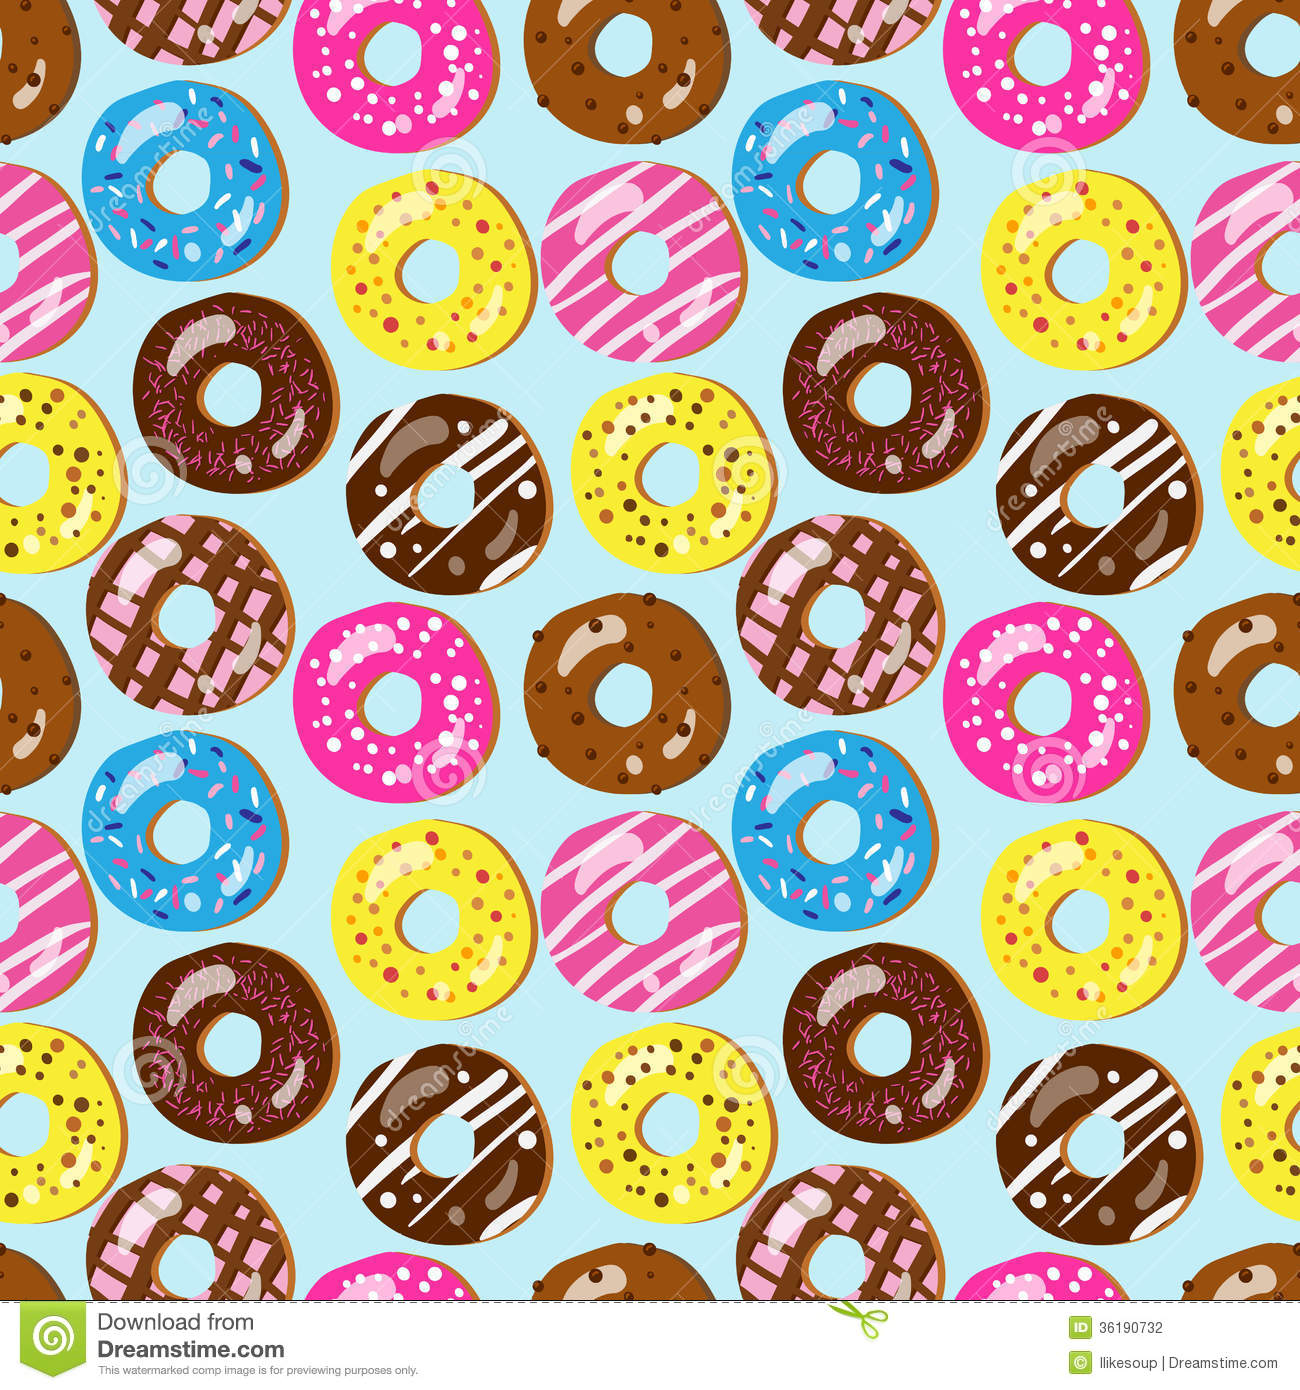 2688 Donut free clipart.